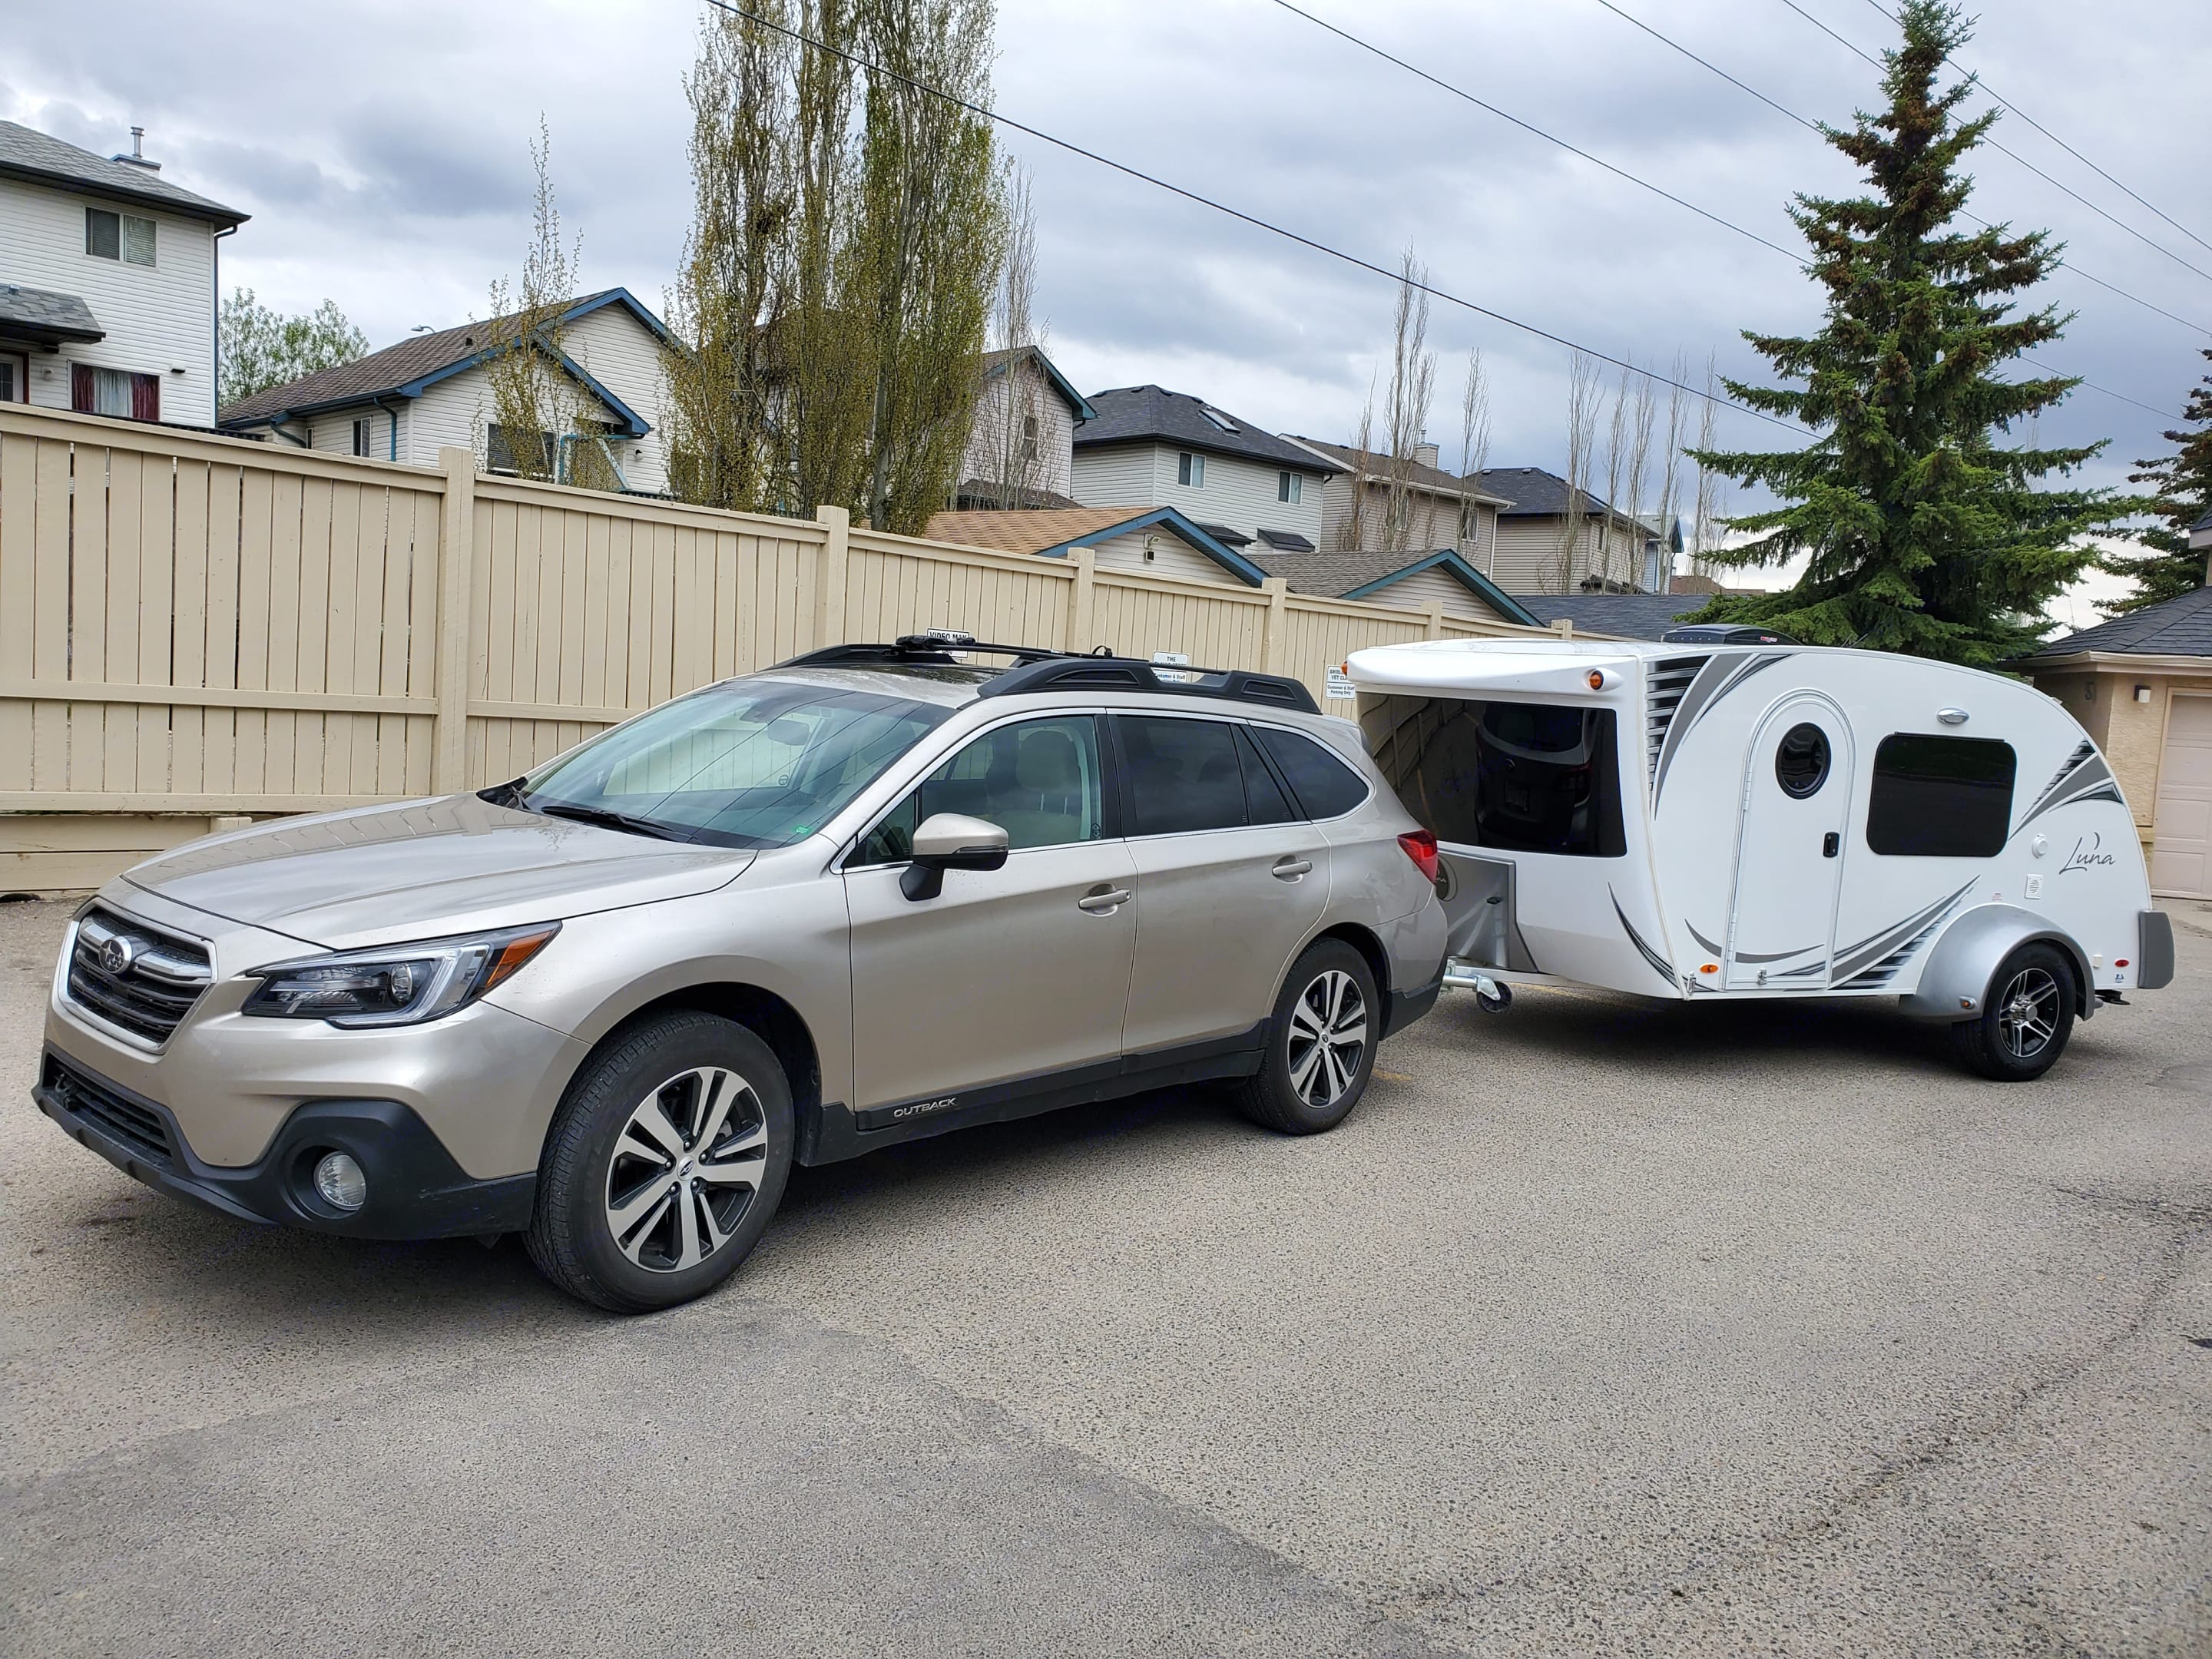 Light Trailer can be towed by any cars. Gross Weight 2200lbs.. InTech RV Luna 2018